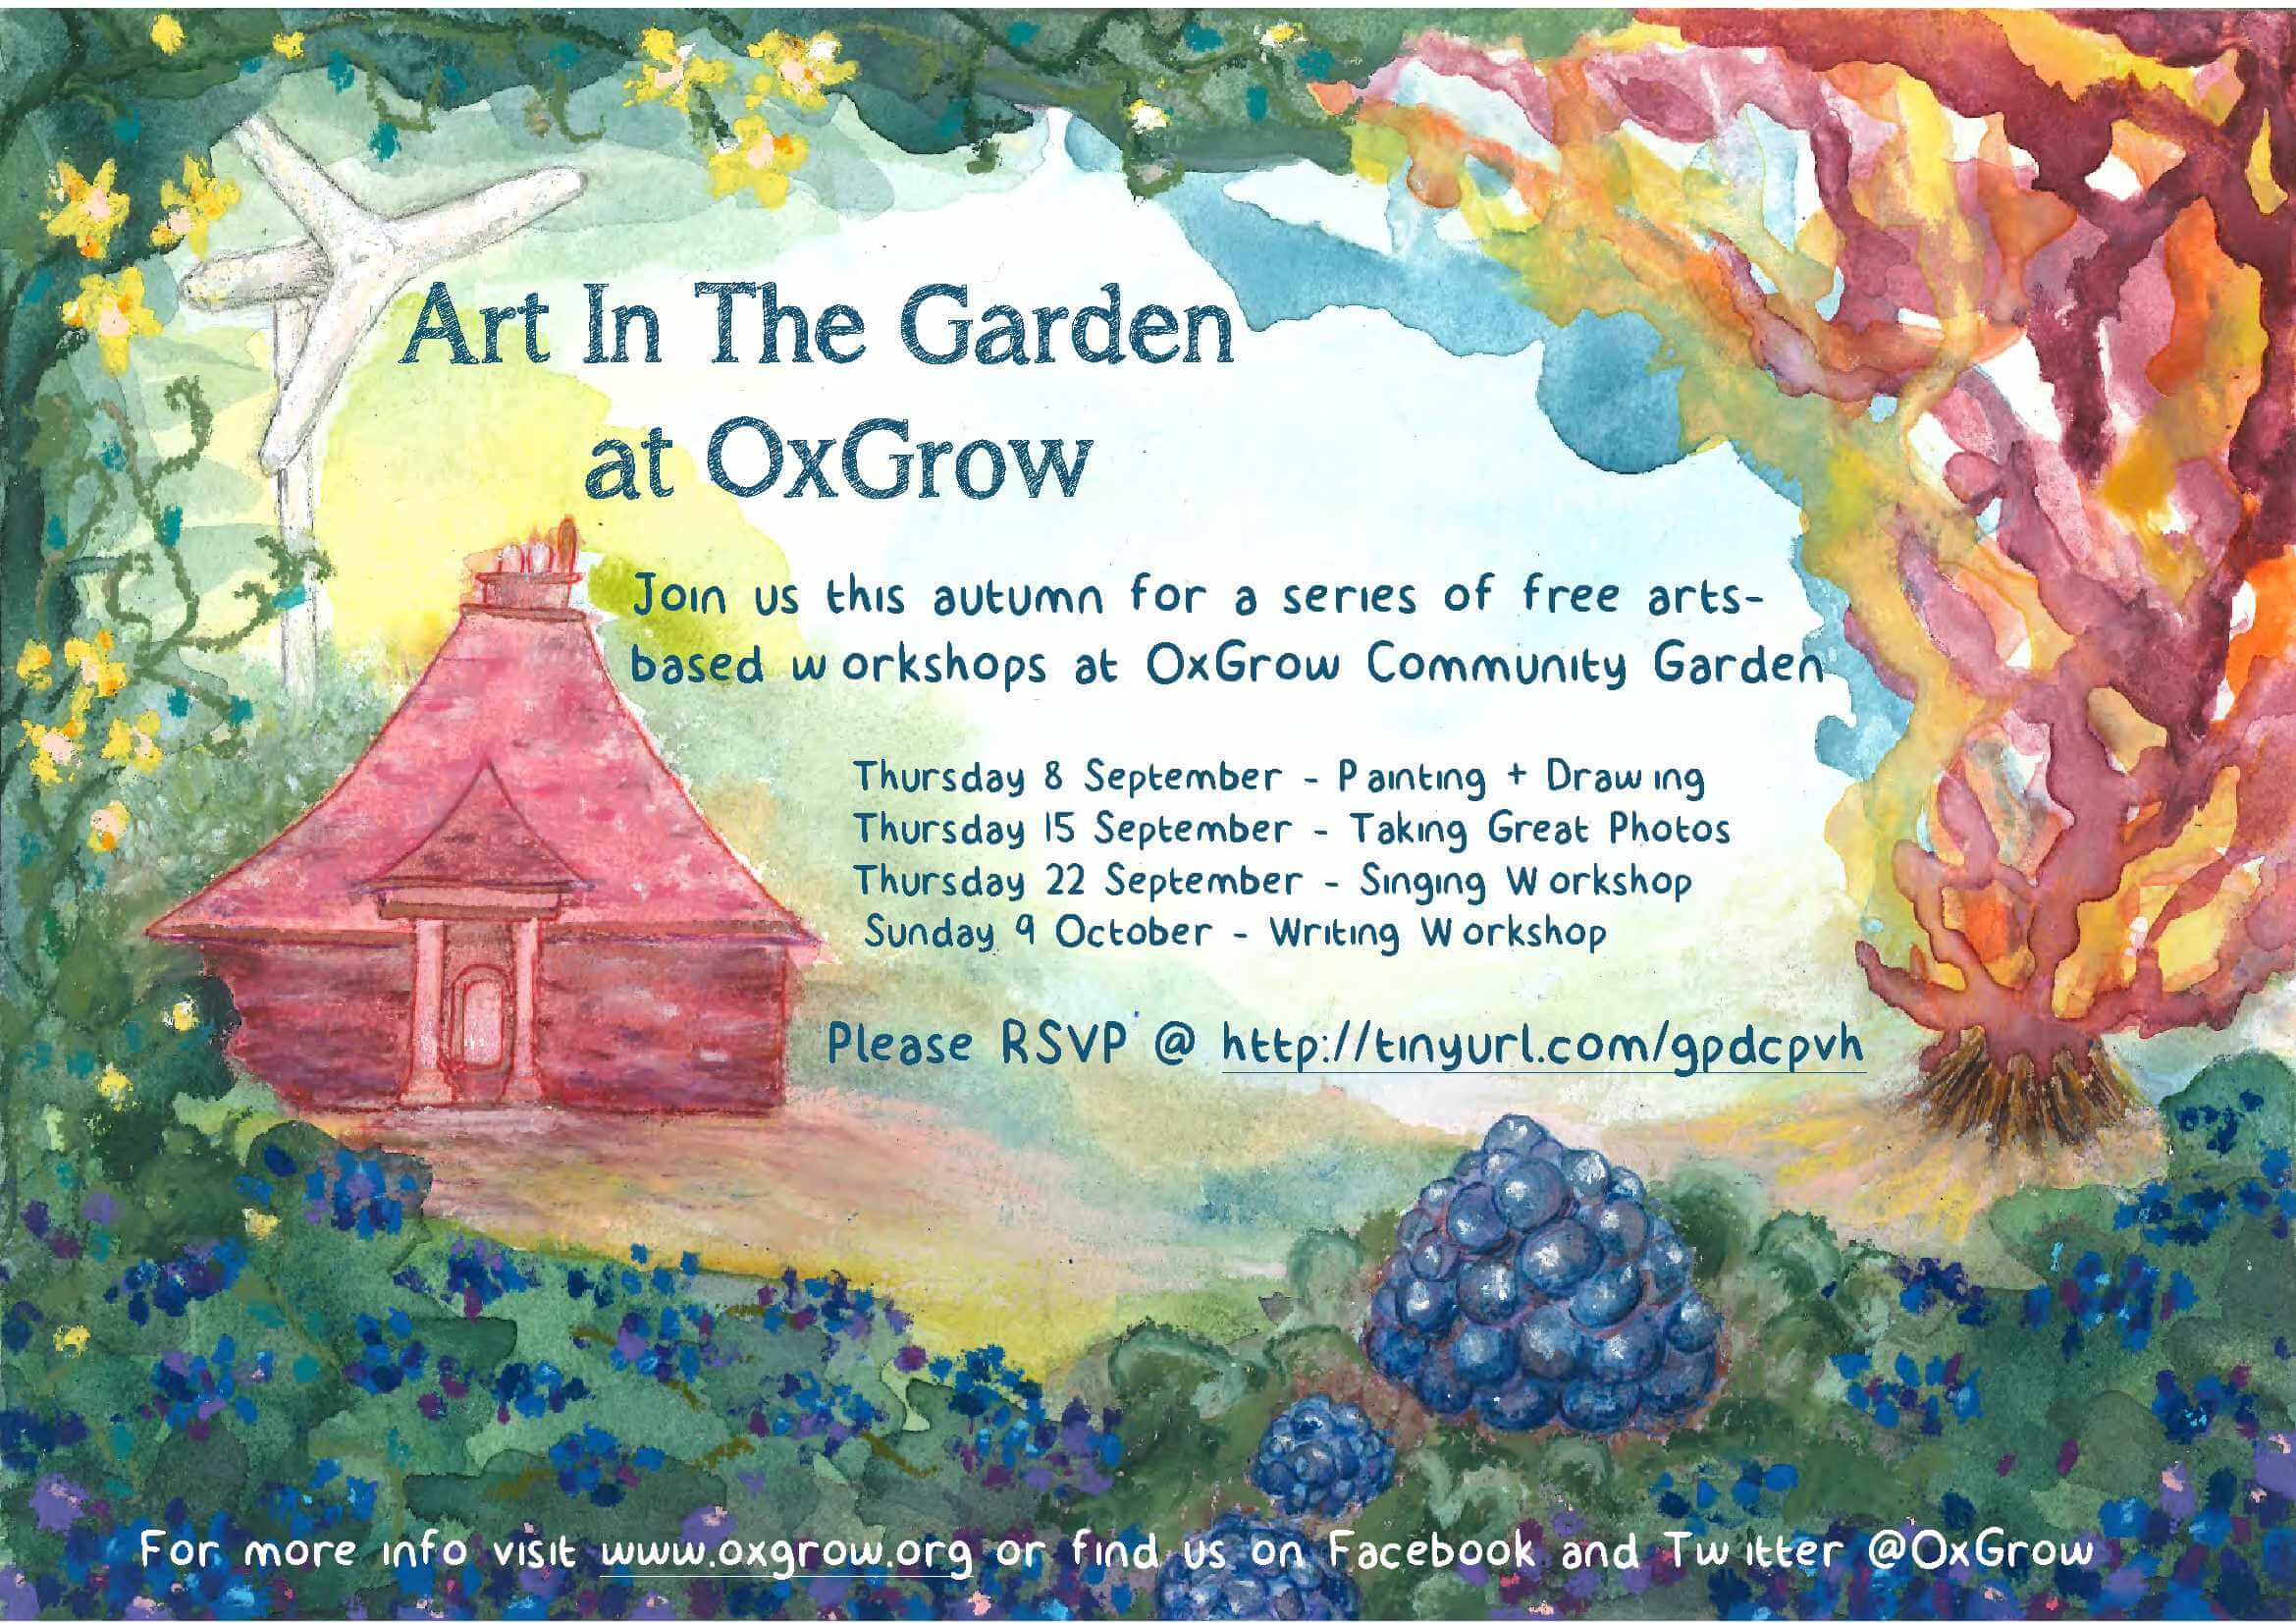 Art In The Garden flyer